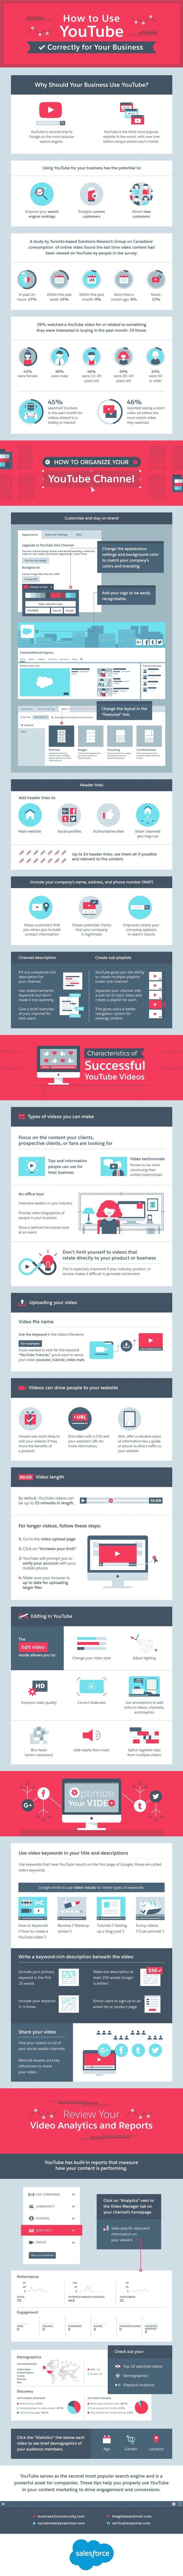 How to Use YouTube Correctly for Your Business - Infographic